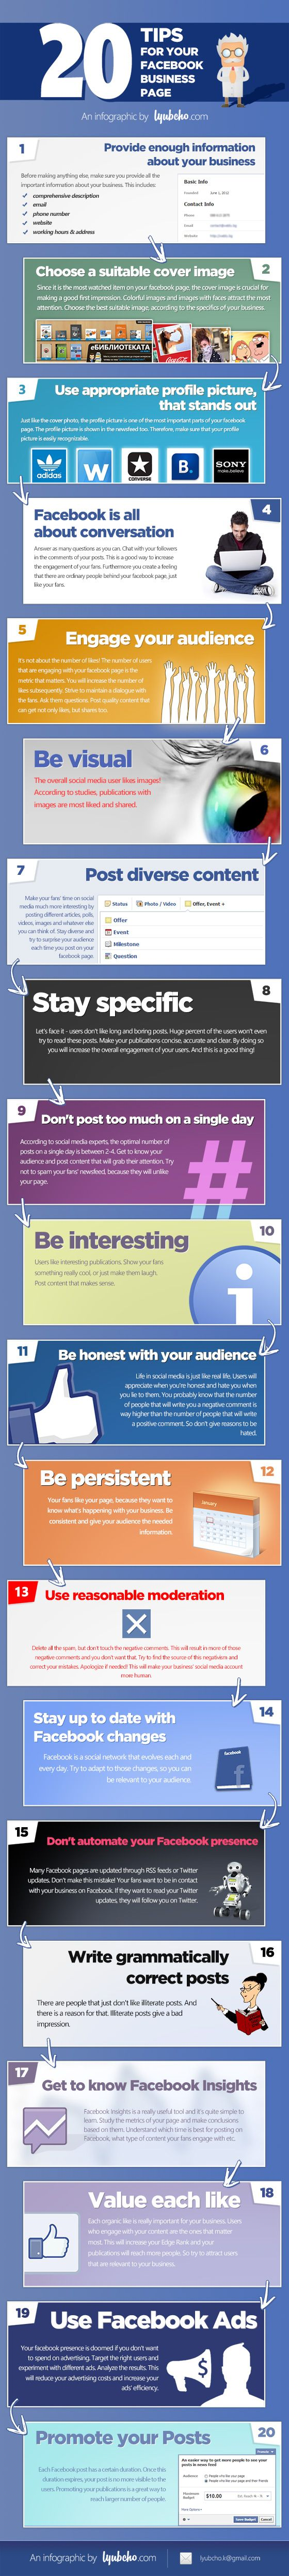 20 Facebook Tips to Enhance Your Page Presence [Infographic] |